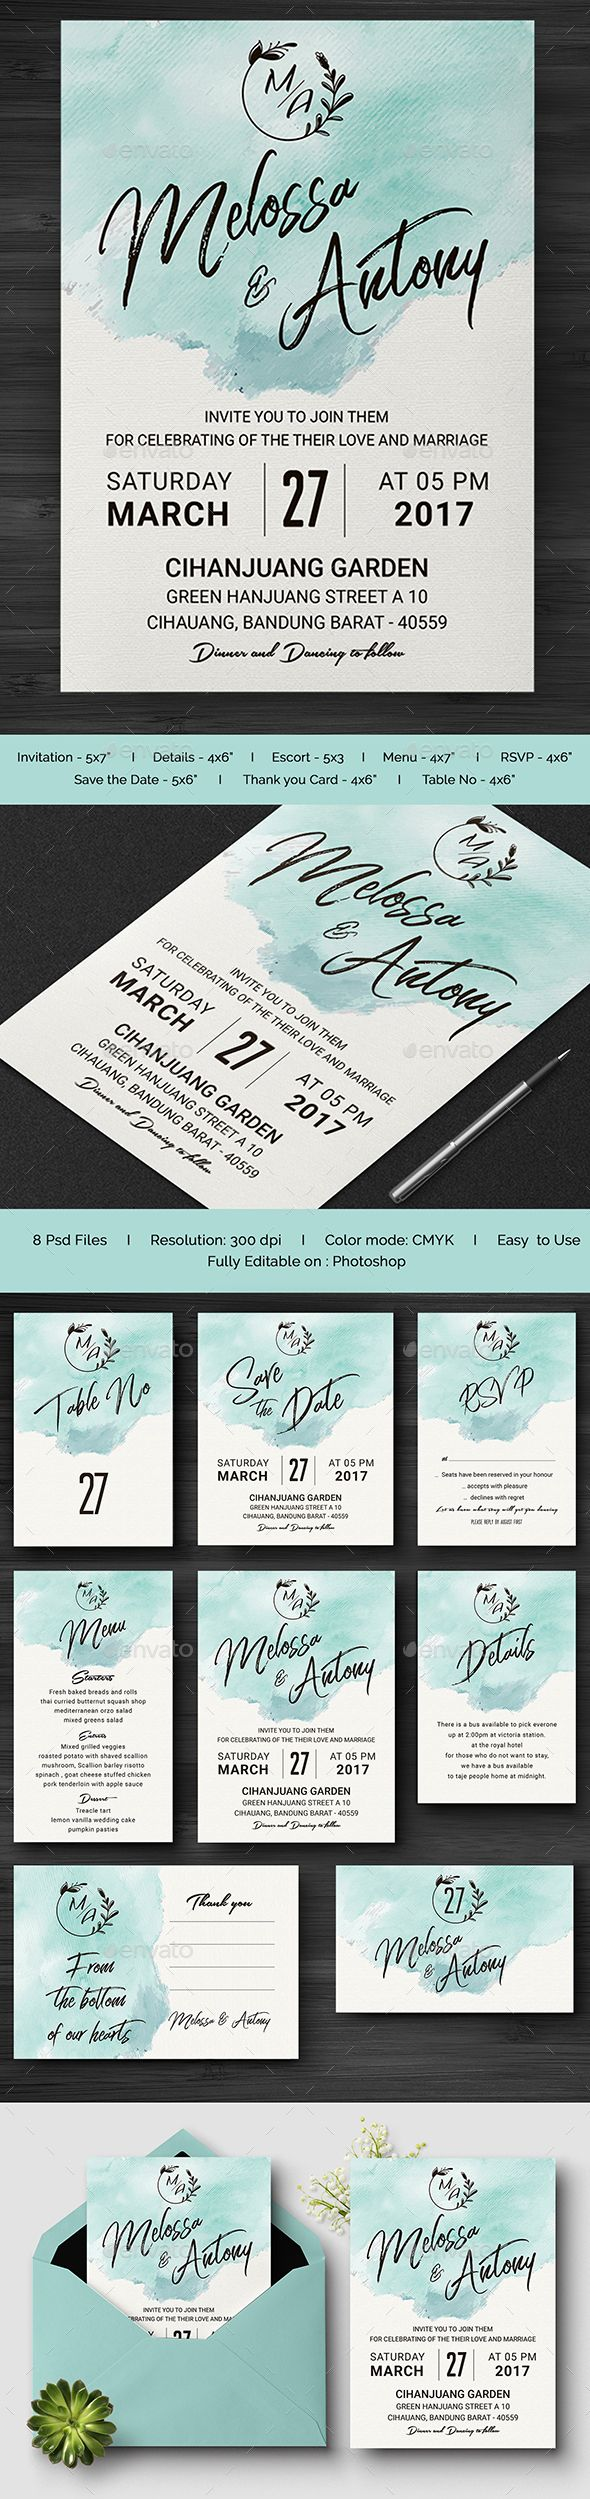 templates for wedding card design%0A  Wedding  Invitation  Print Templates Download here  https   graphicriver